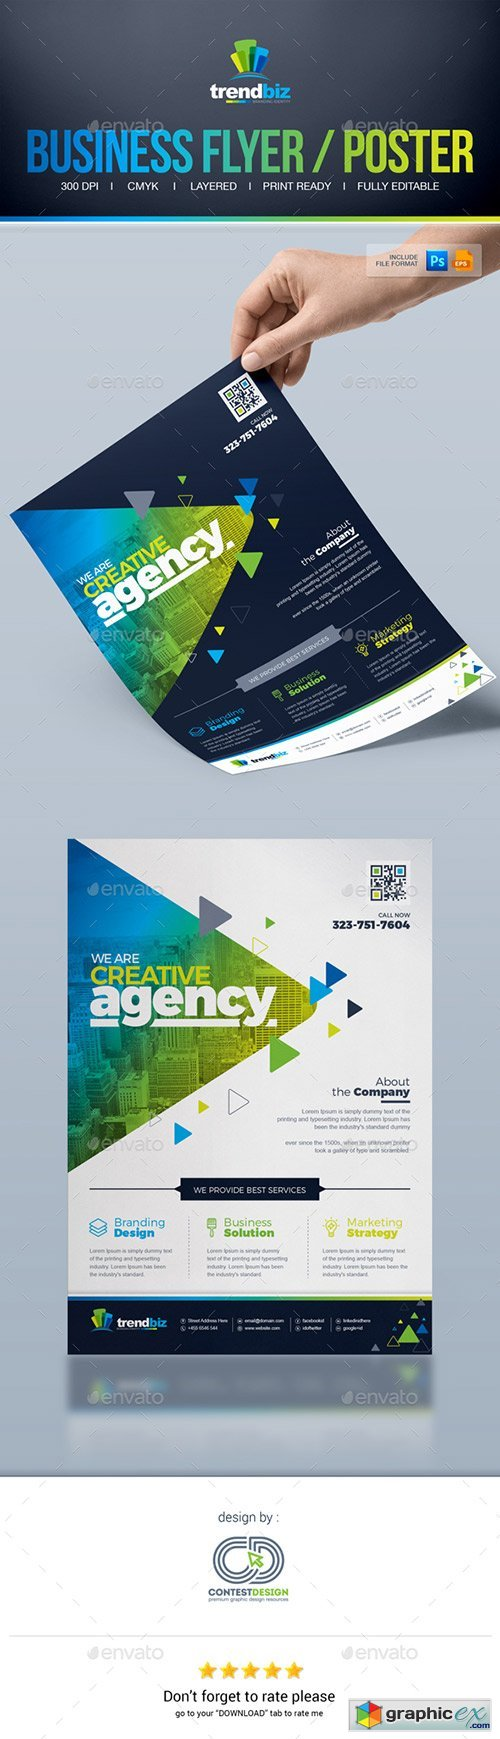 Corporate Business Flyer / Poster Advertising Template